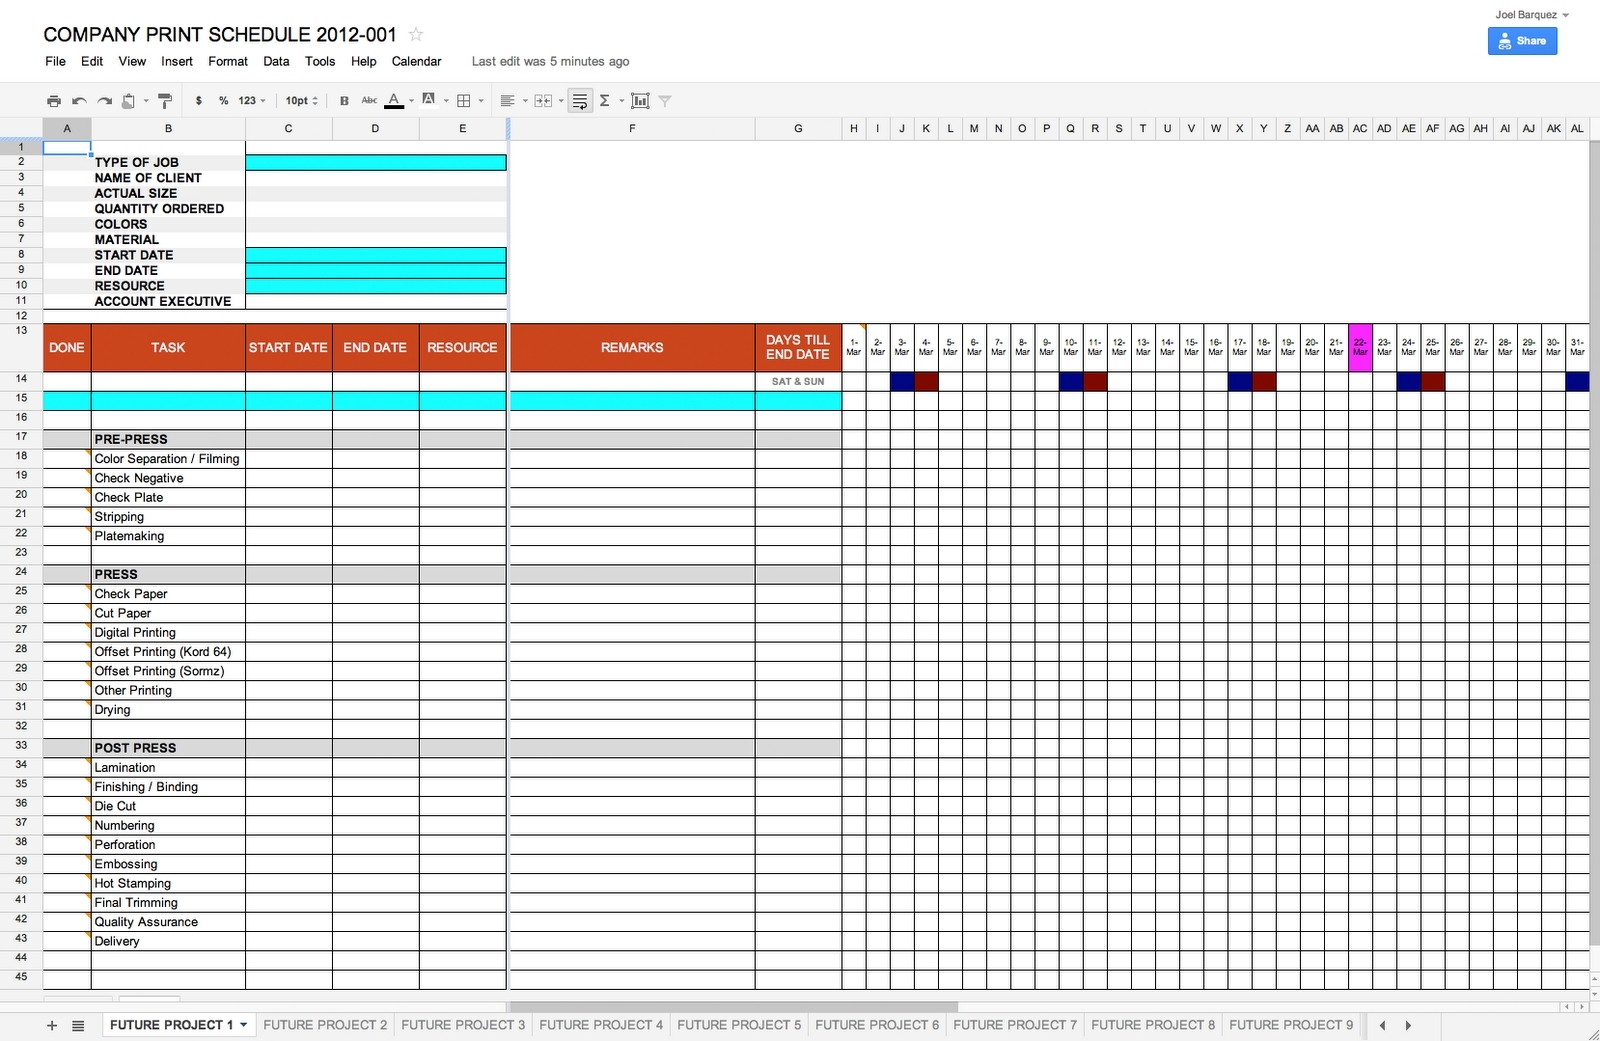 Schedule Template Google Docs | Schedule Template Free In Google And Project Management Spreadsheet Template Google Docs